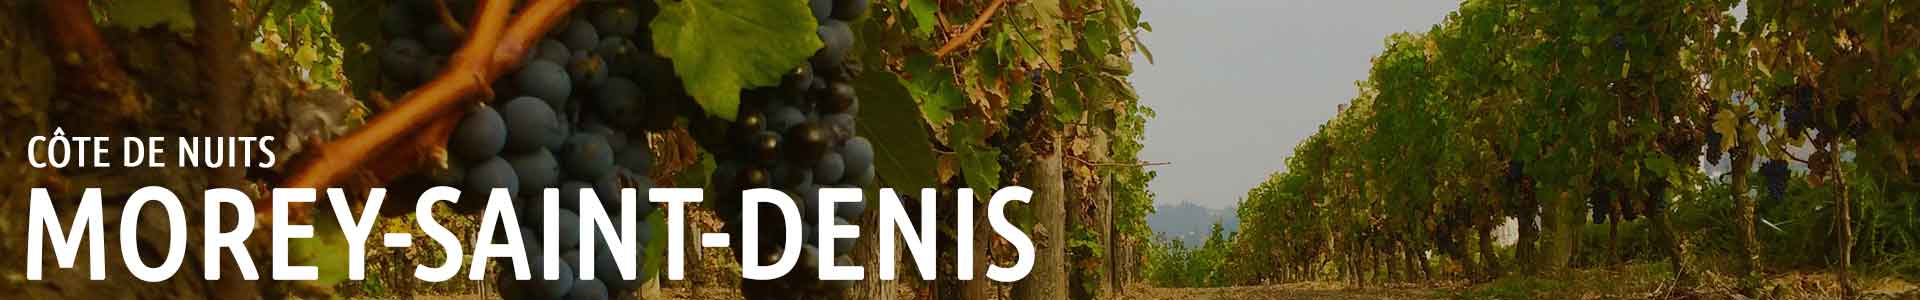 Pleasure Wine: Morey-Saint-Denis Wines